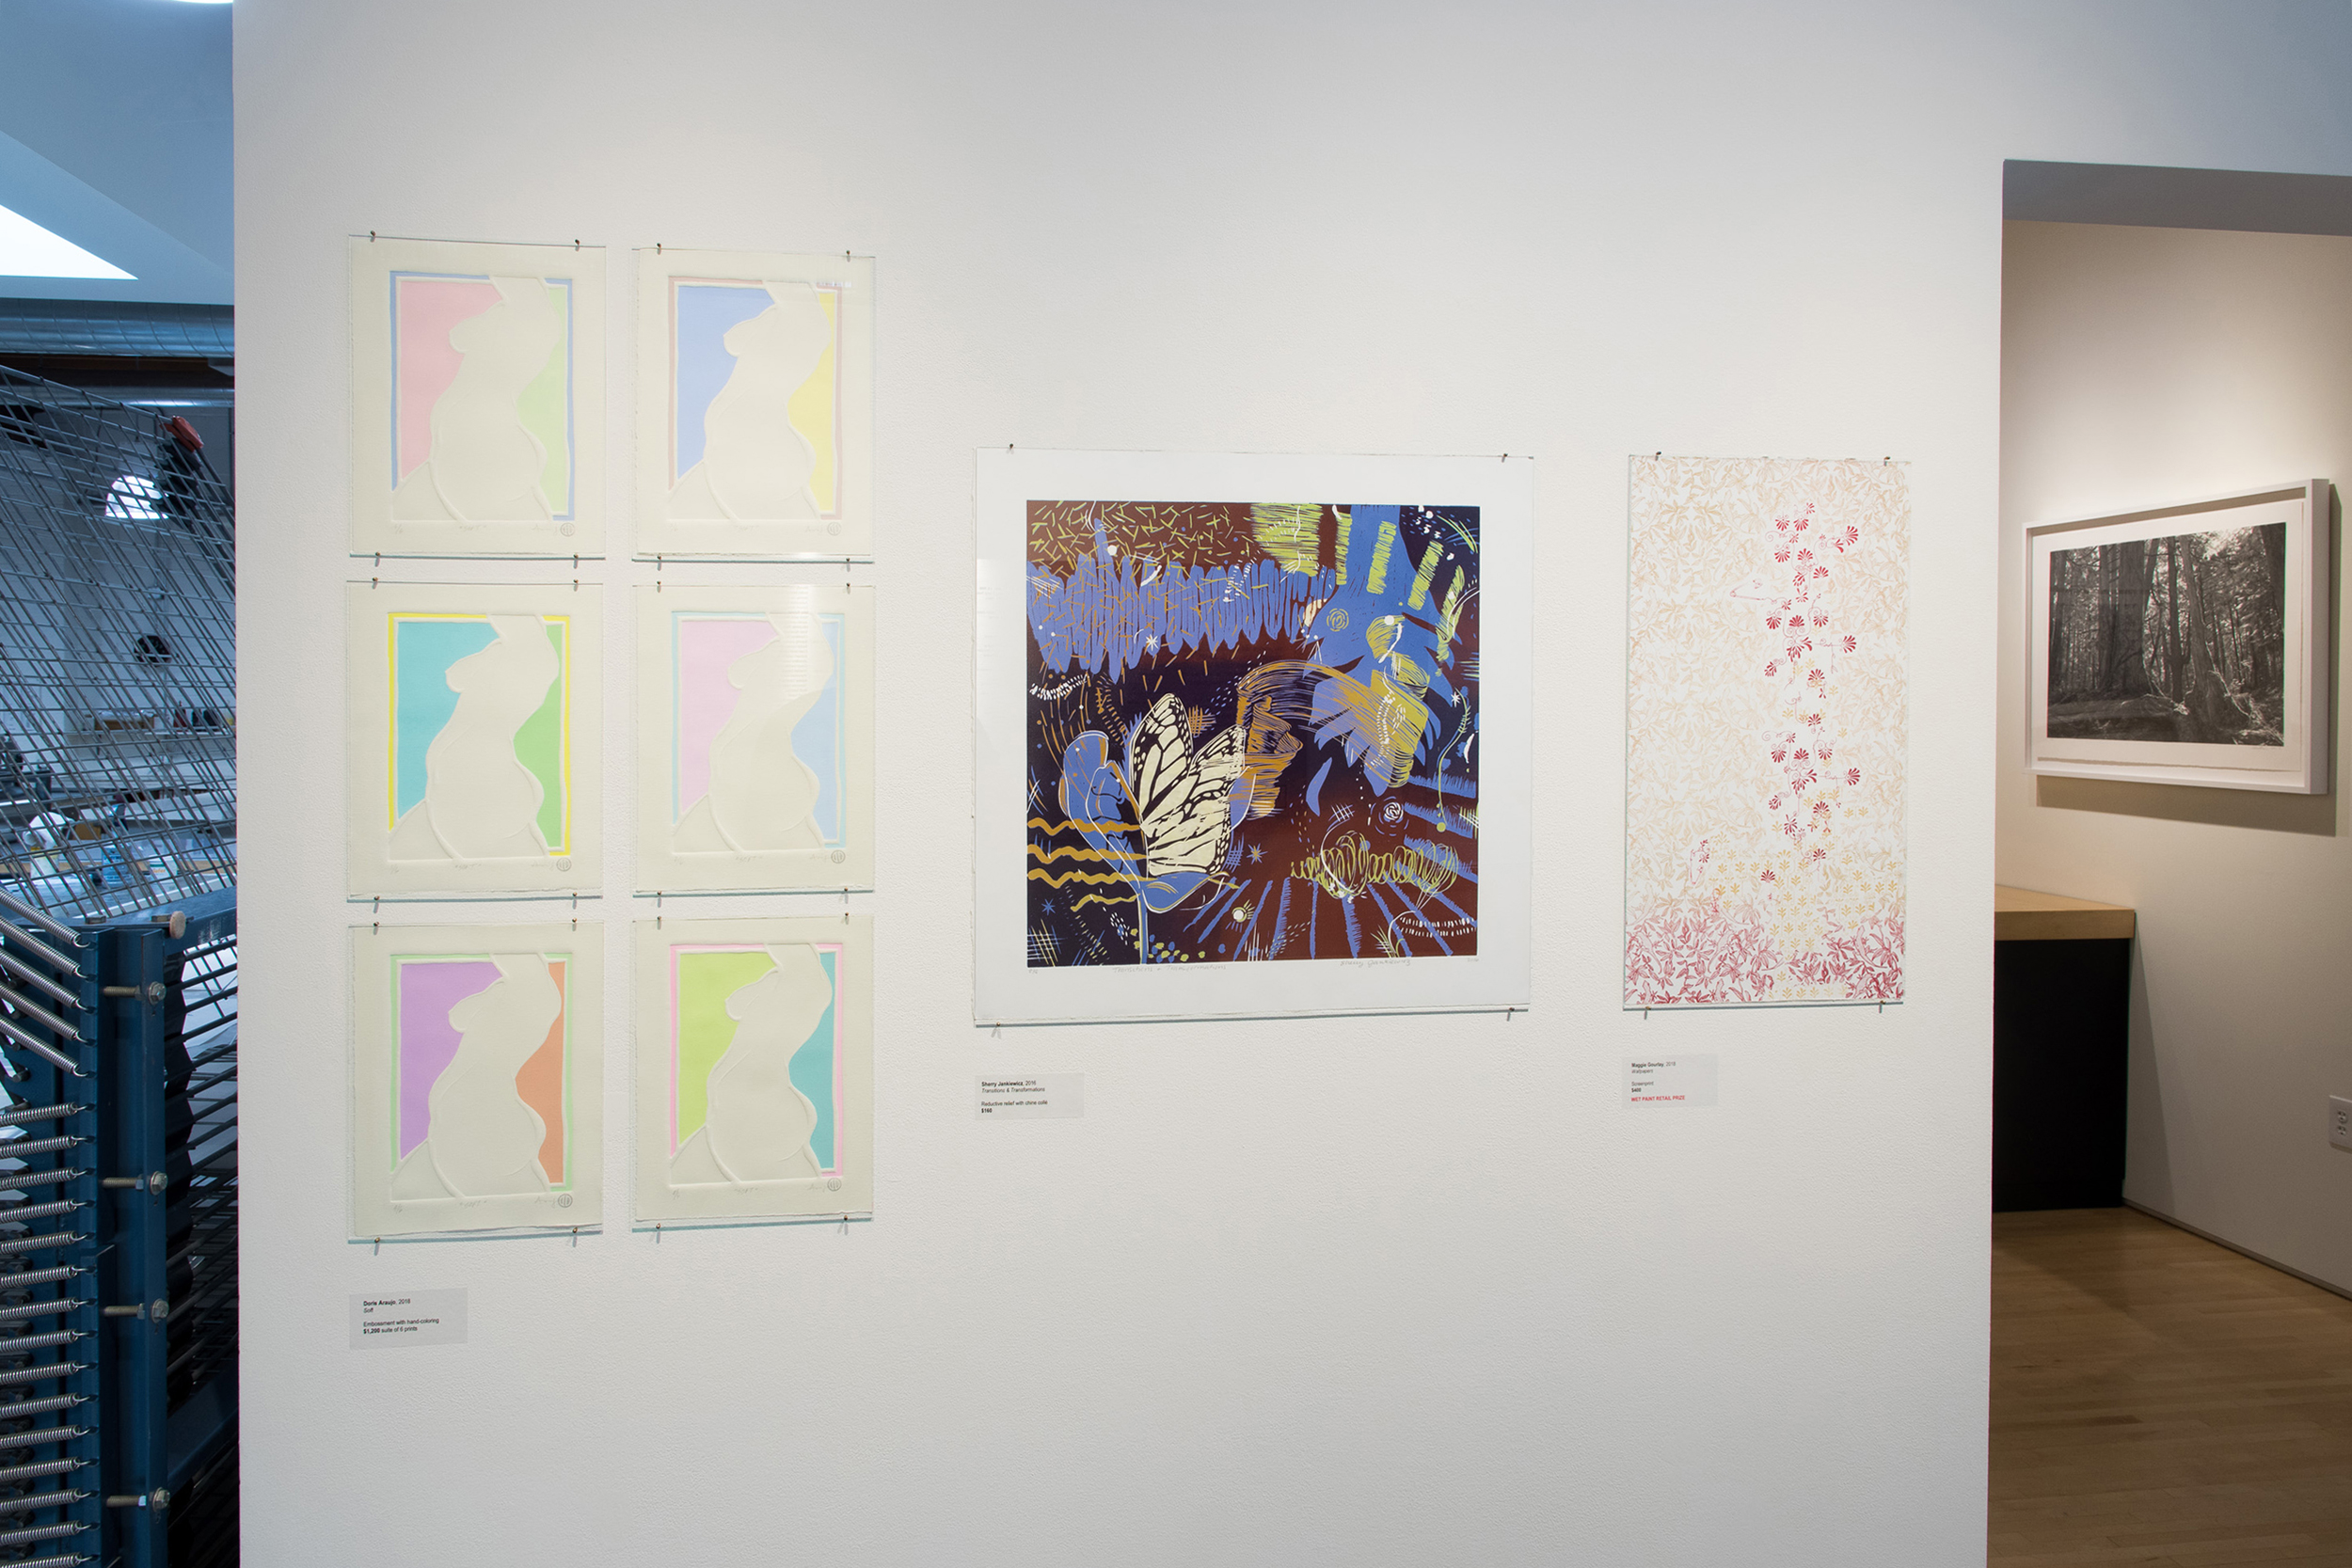 Highpoint PrintmakingStand Out Prints Exhibit180927a0159.JPG